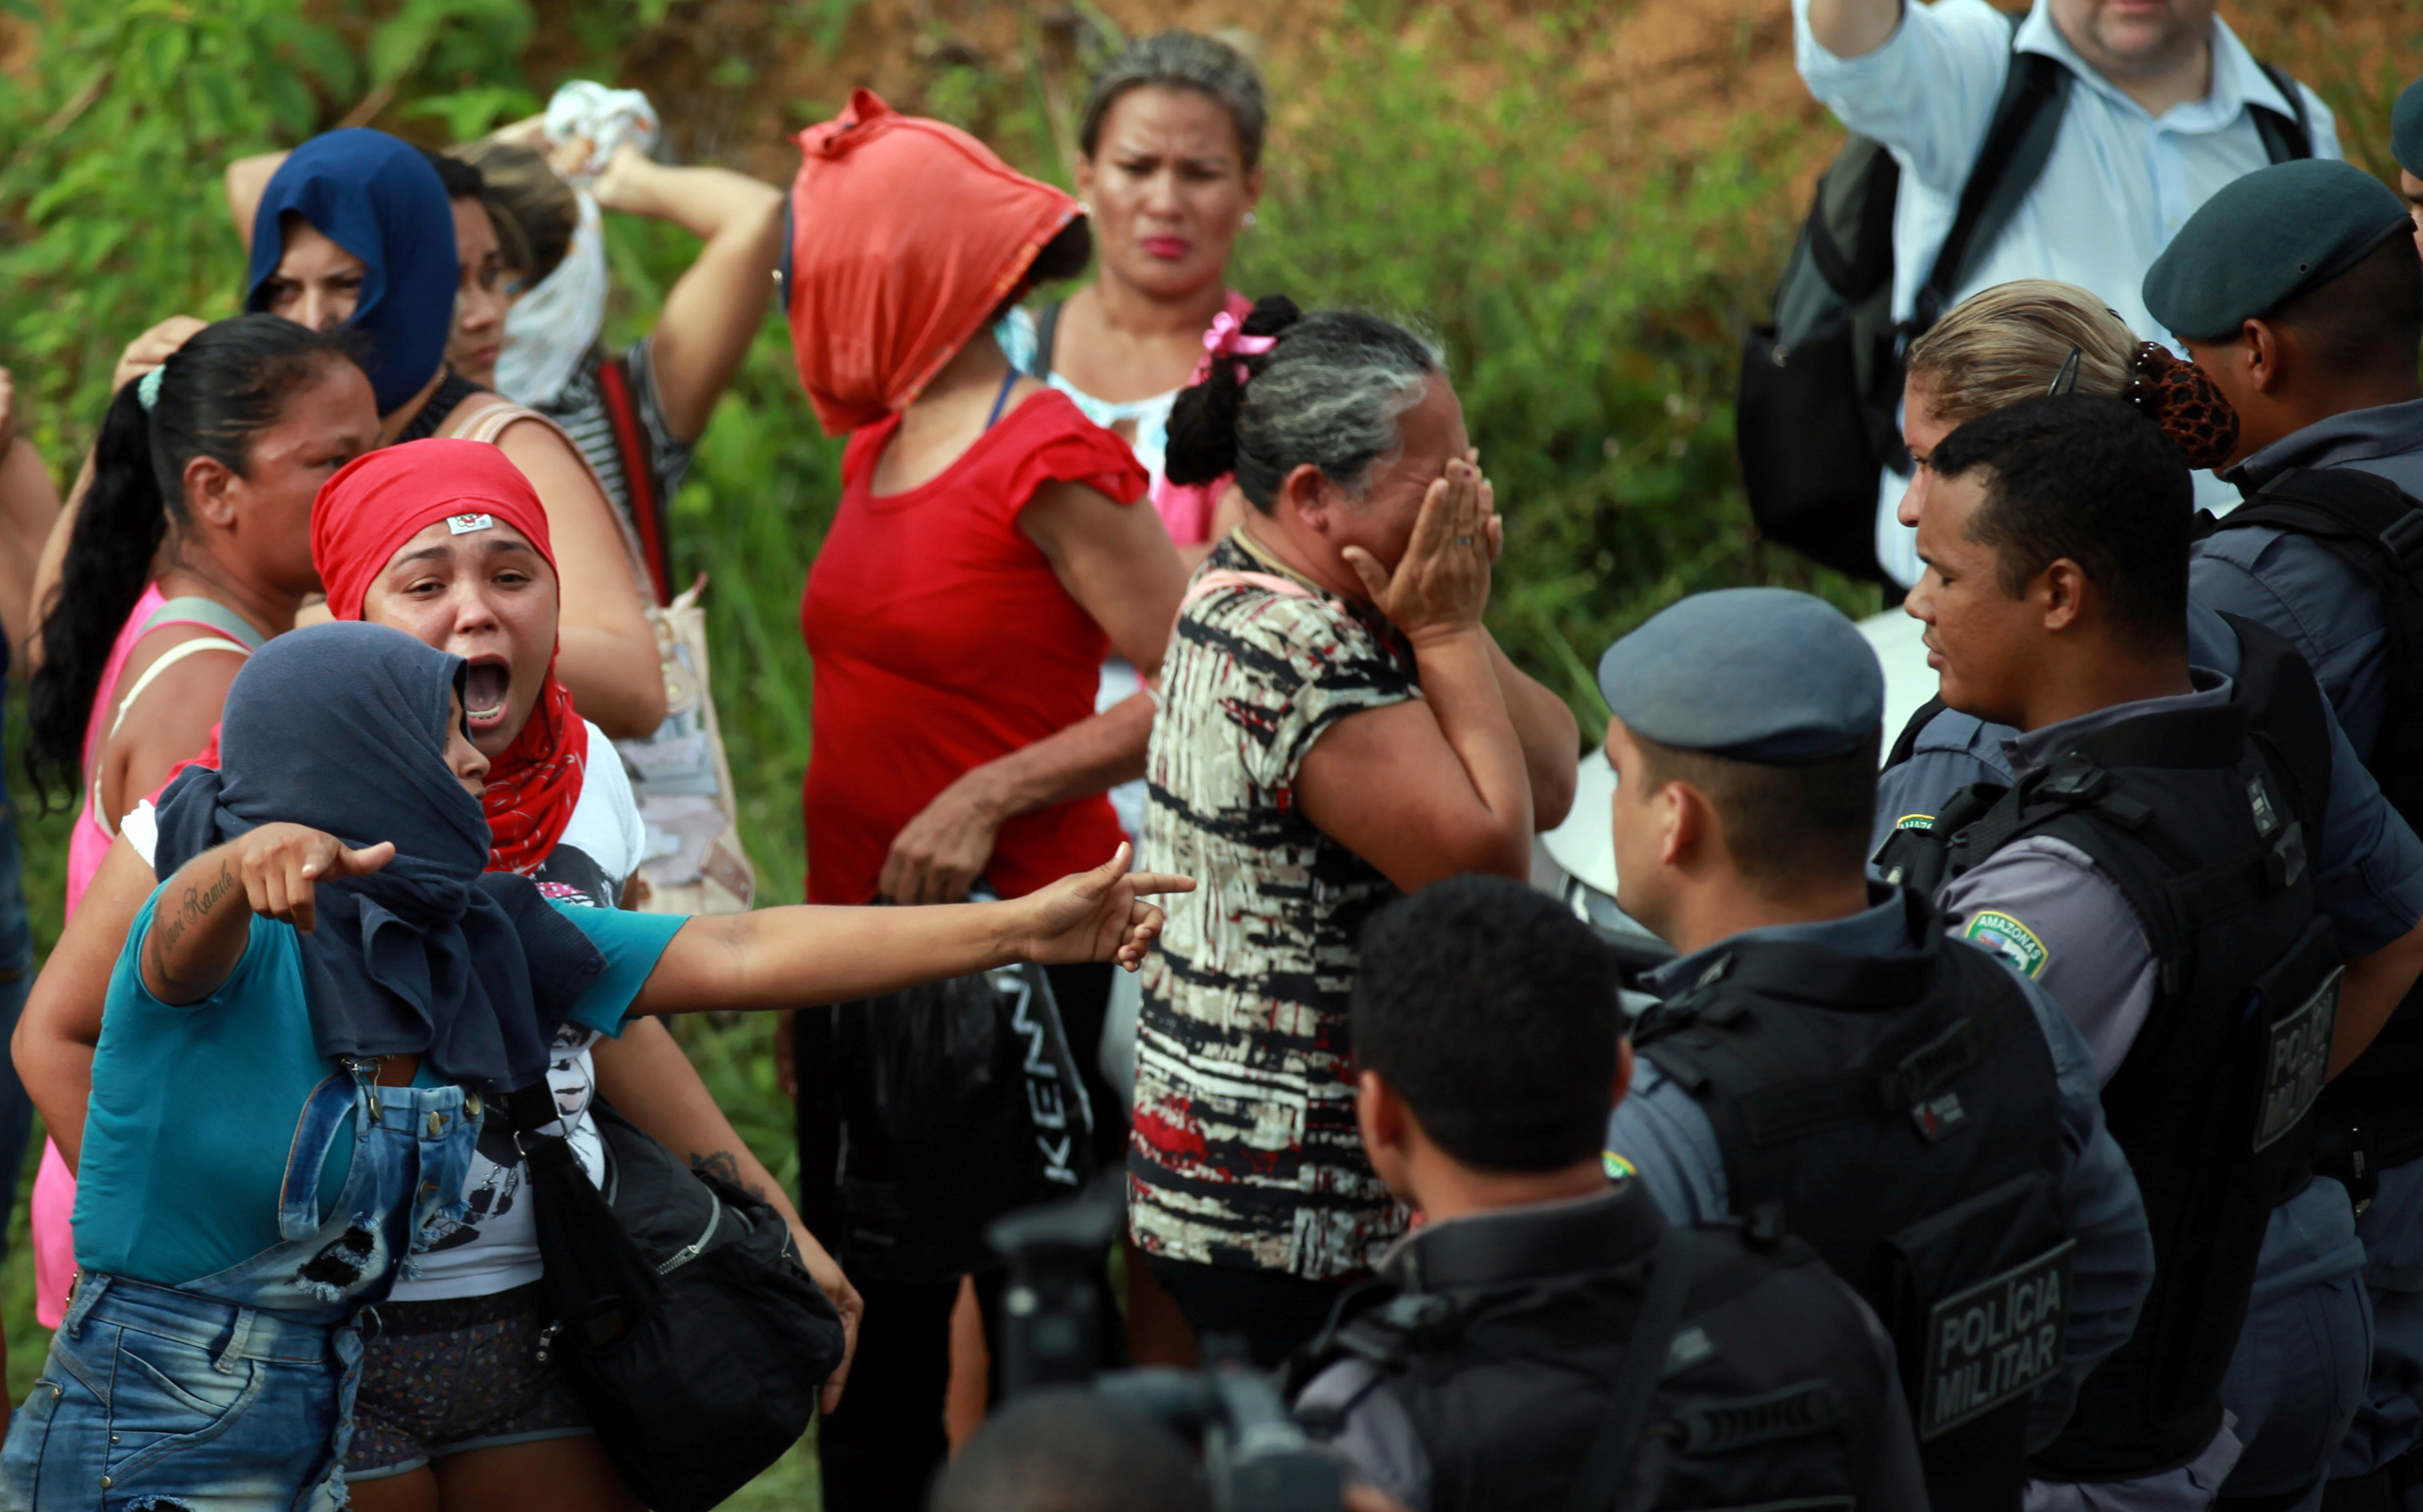 Relatives of prisoners react at a checkpoint close to the prison where around 60 people were killed in a prison riot in  Manaus, Brazil on Jan. 2, 2017.